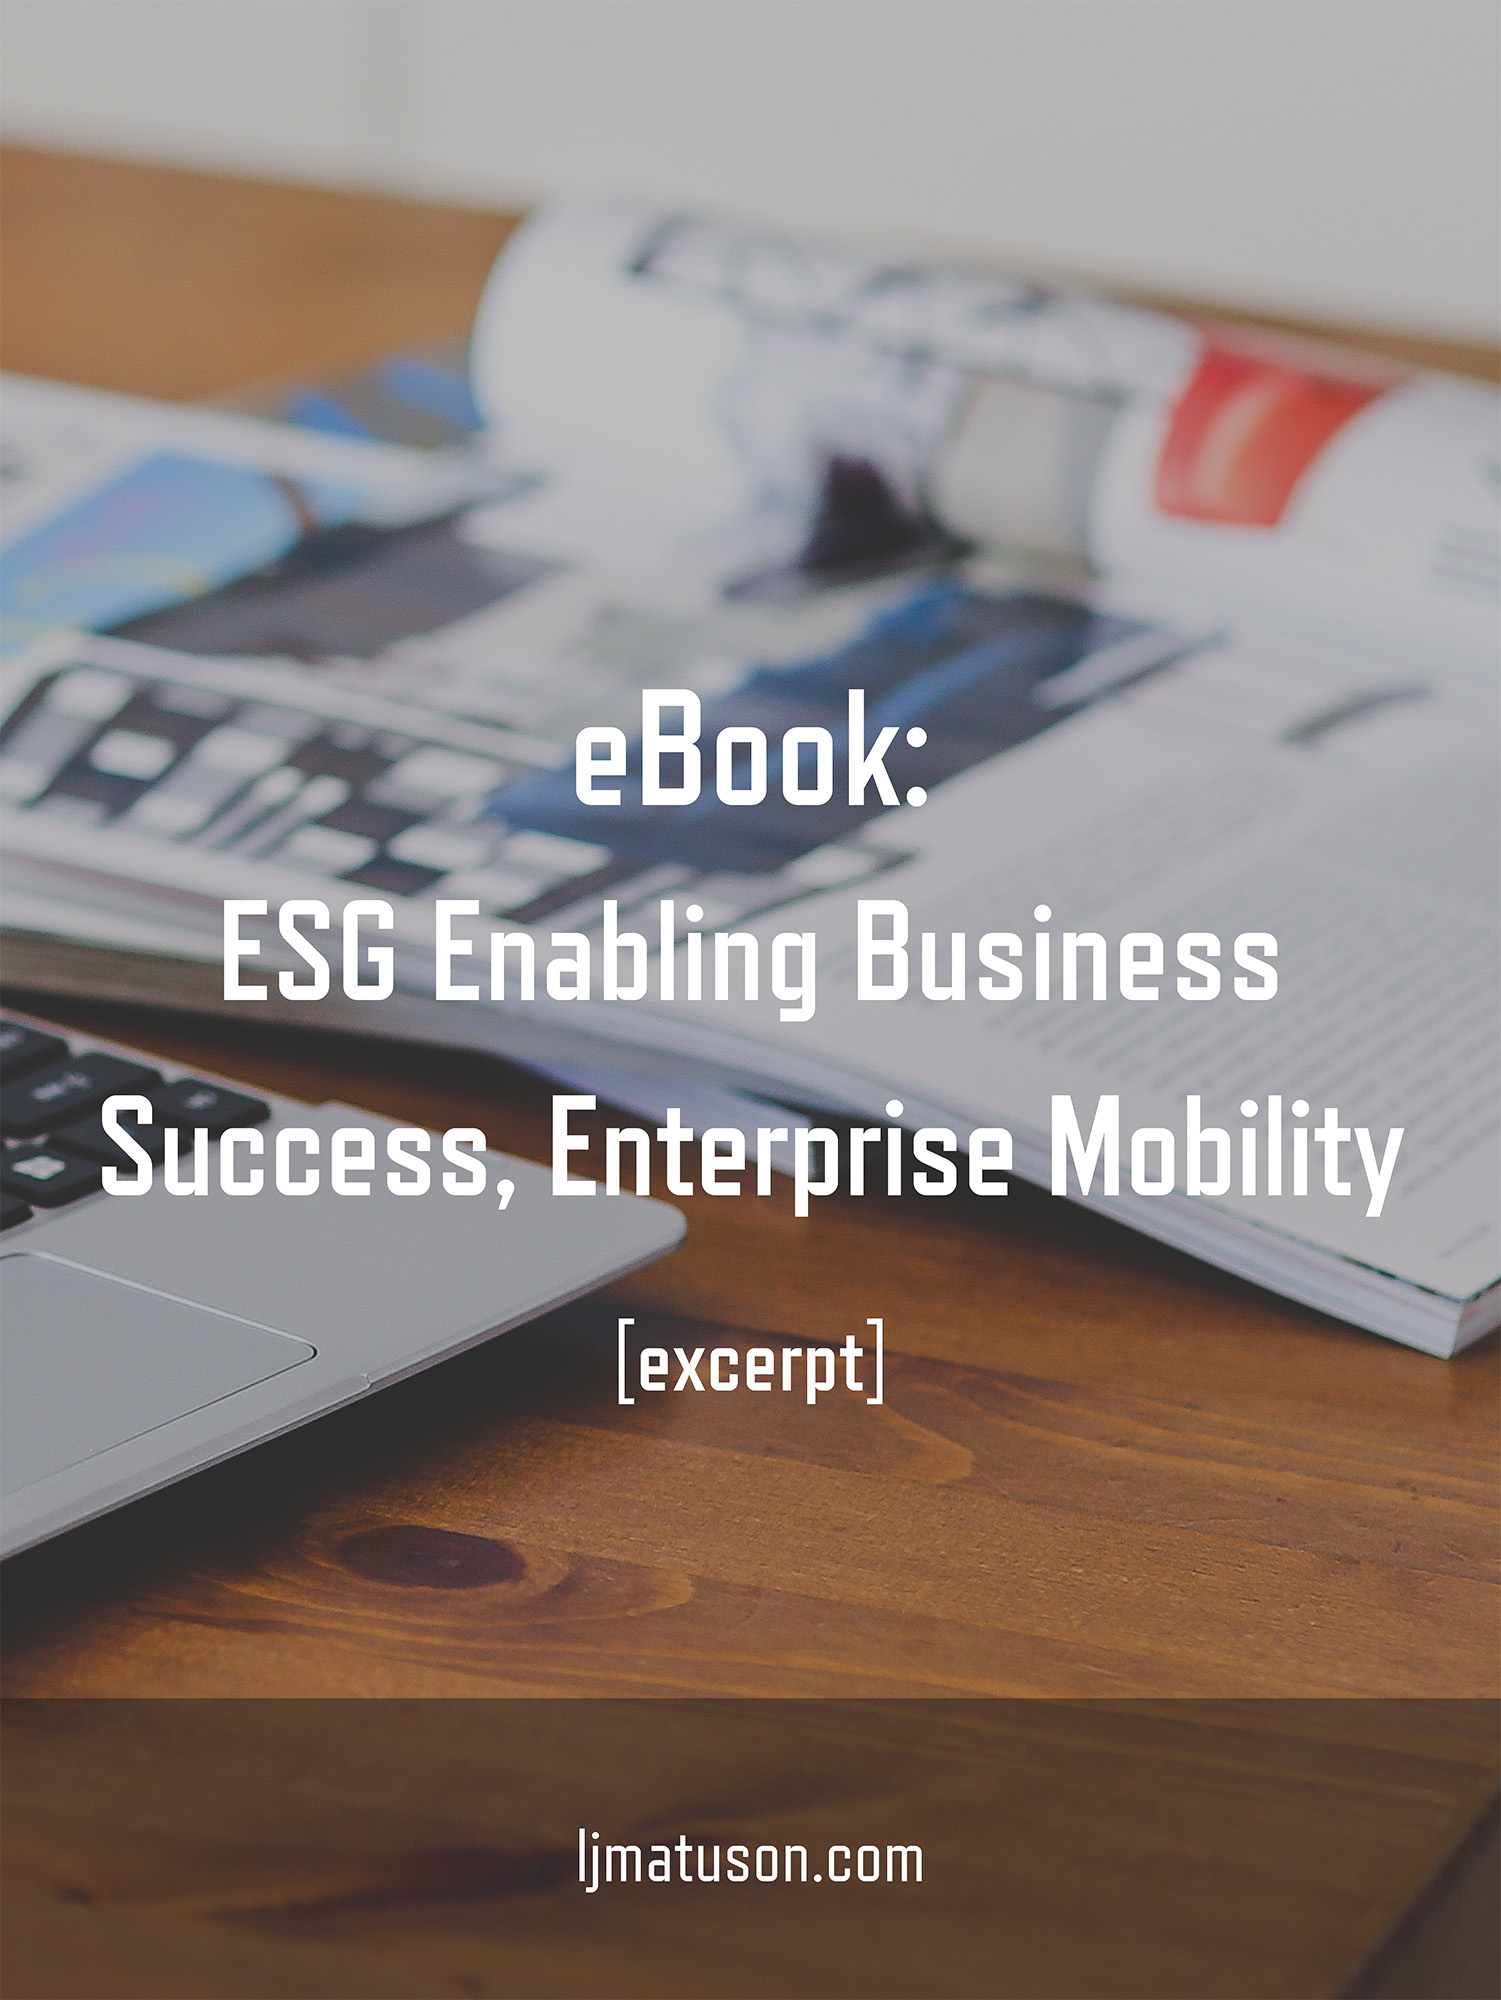 LeahMatuson_ESG_eBook_Enterprise-Mobility-Success.jpg